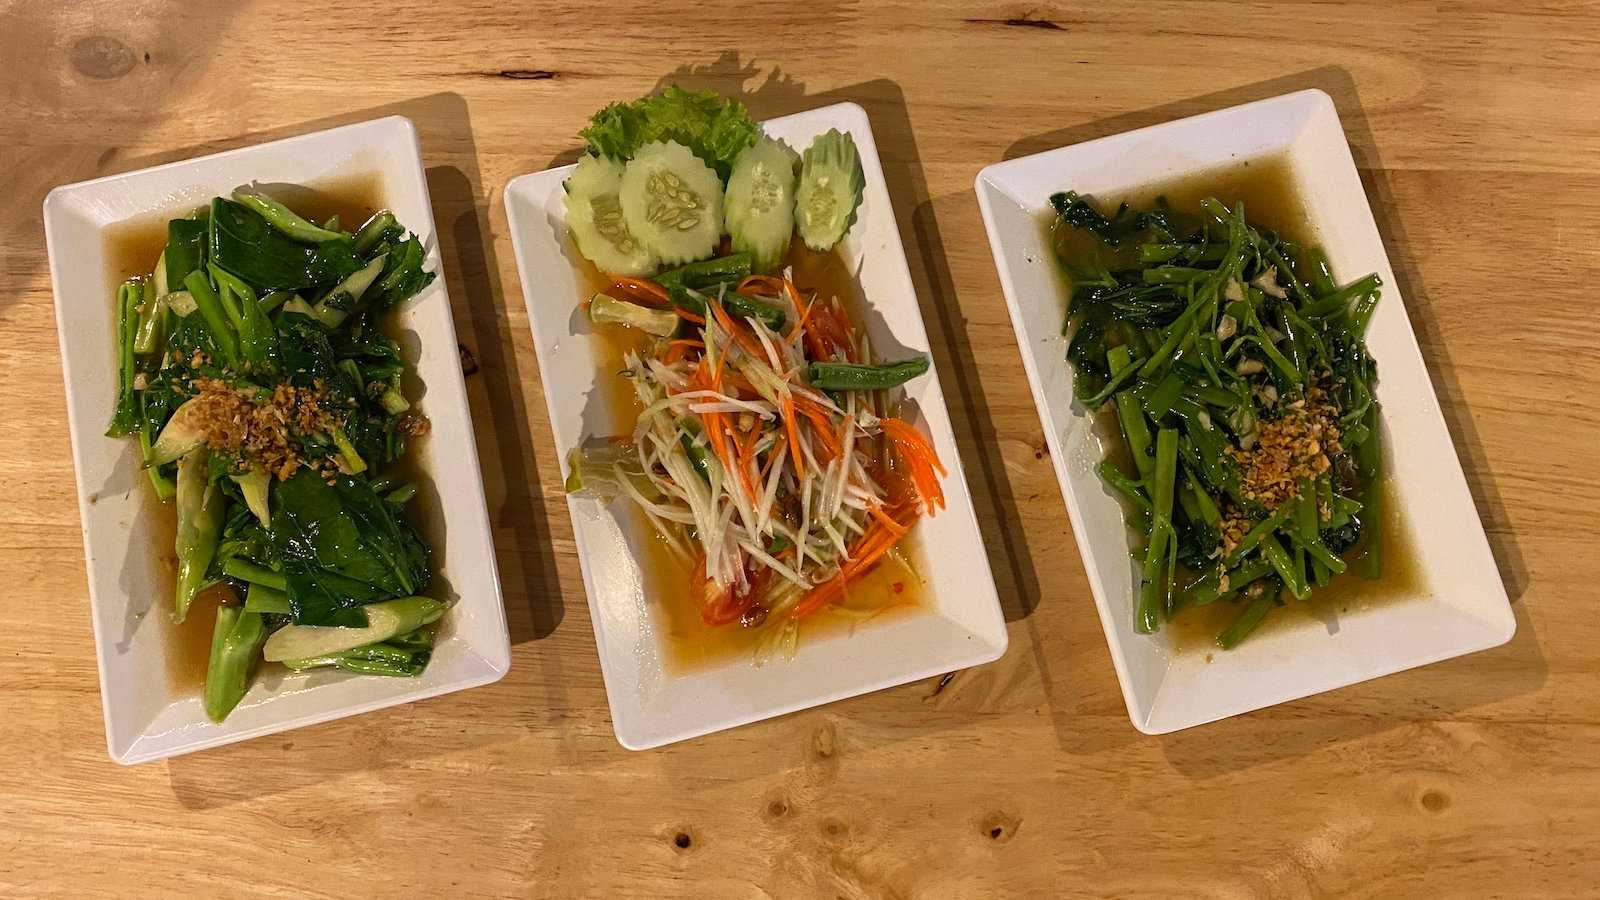 Morning glory is a delicious aquatic vegetable from Asia that we loved stir fried in the Thai style